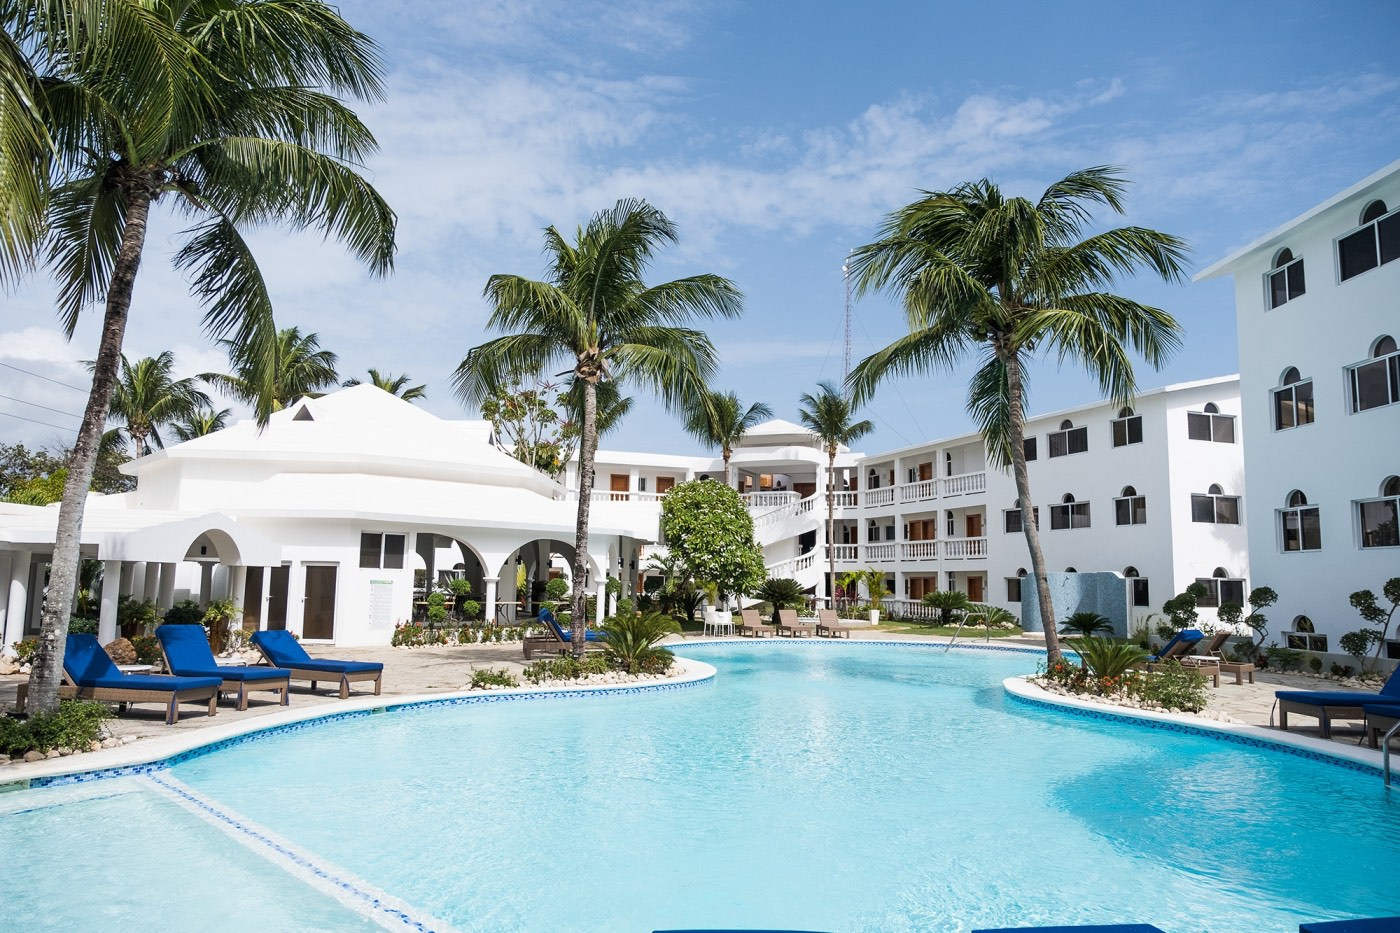 Beach Access Condos Cabarete Dominican Republic